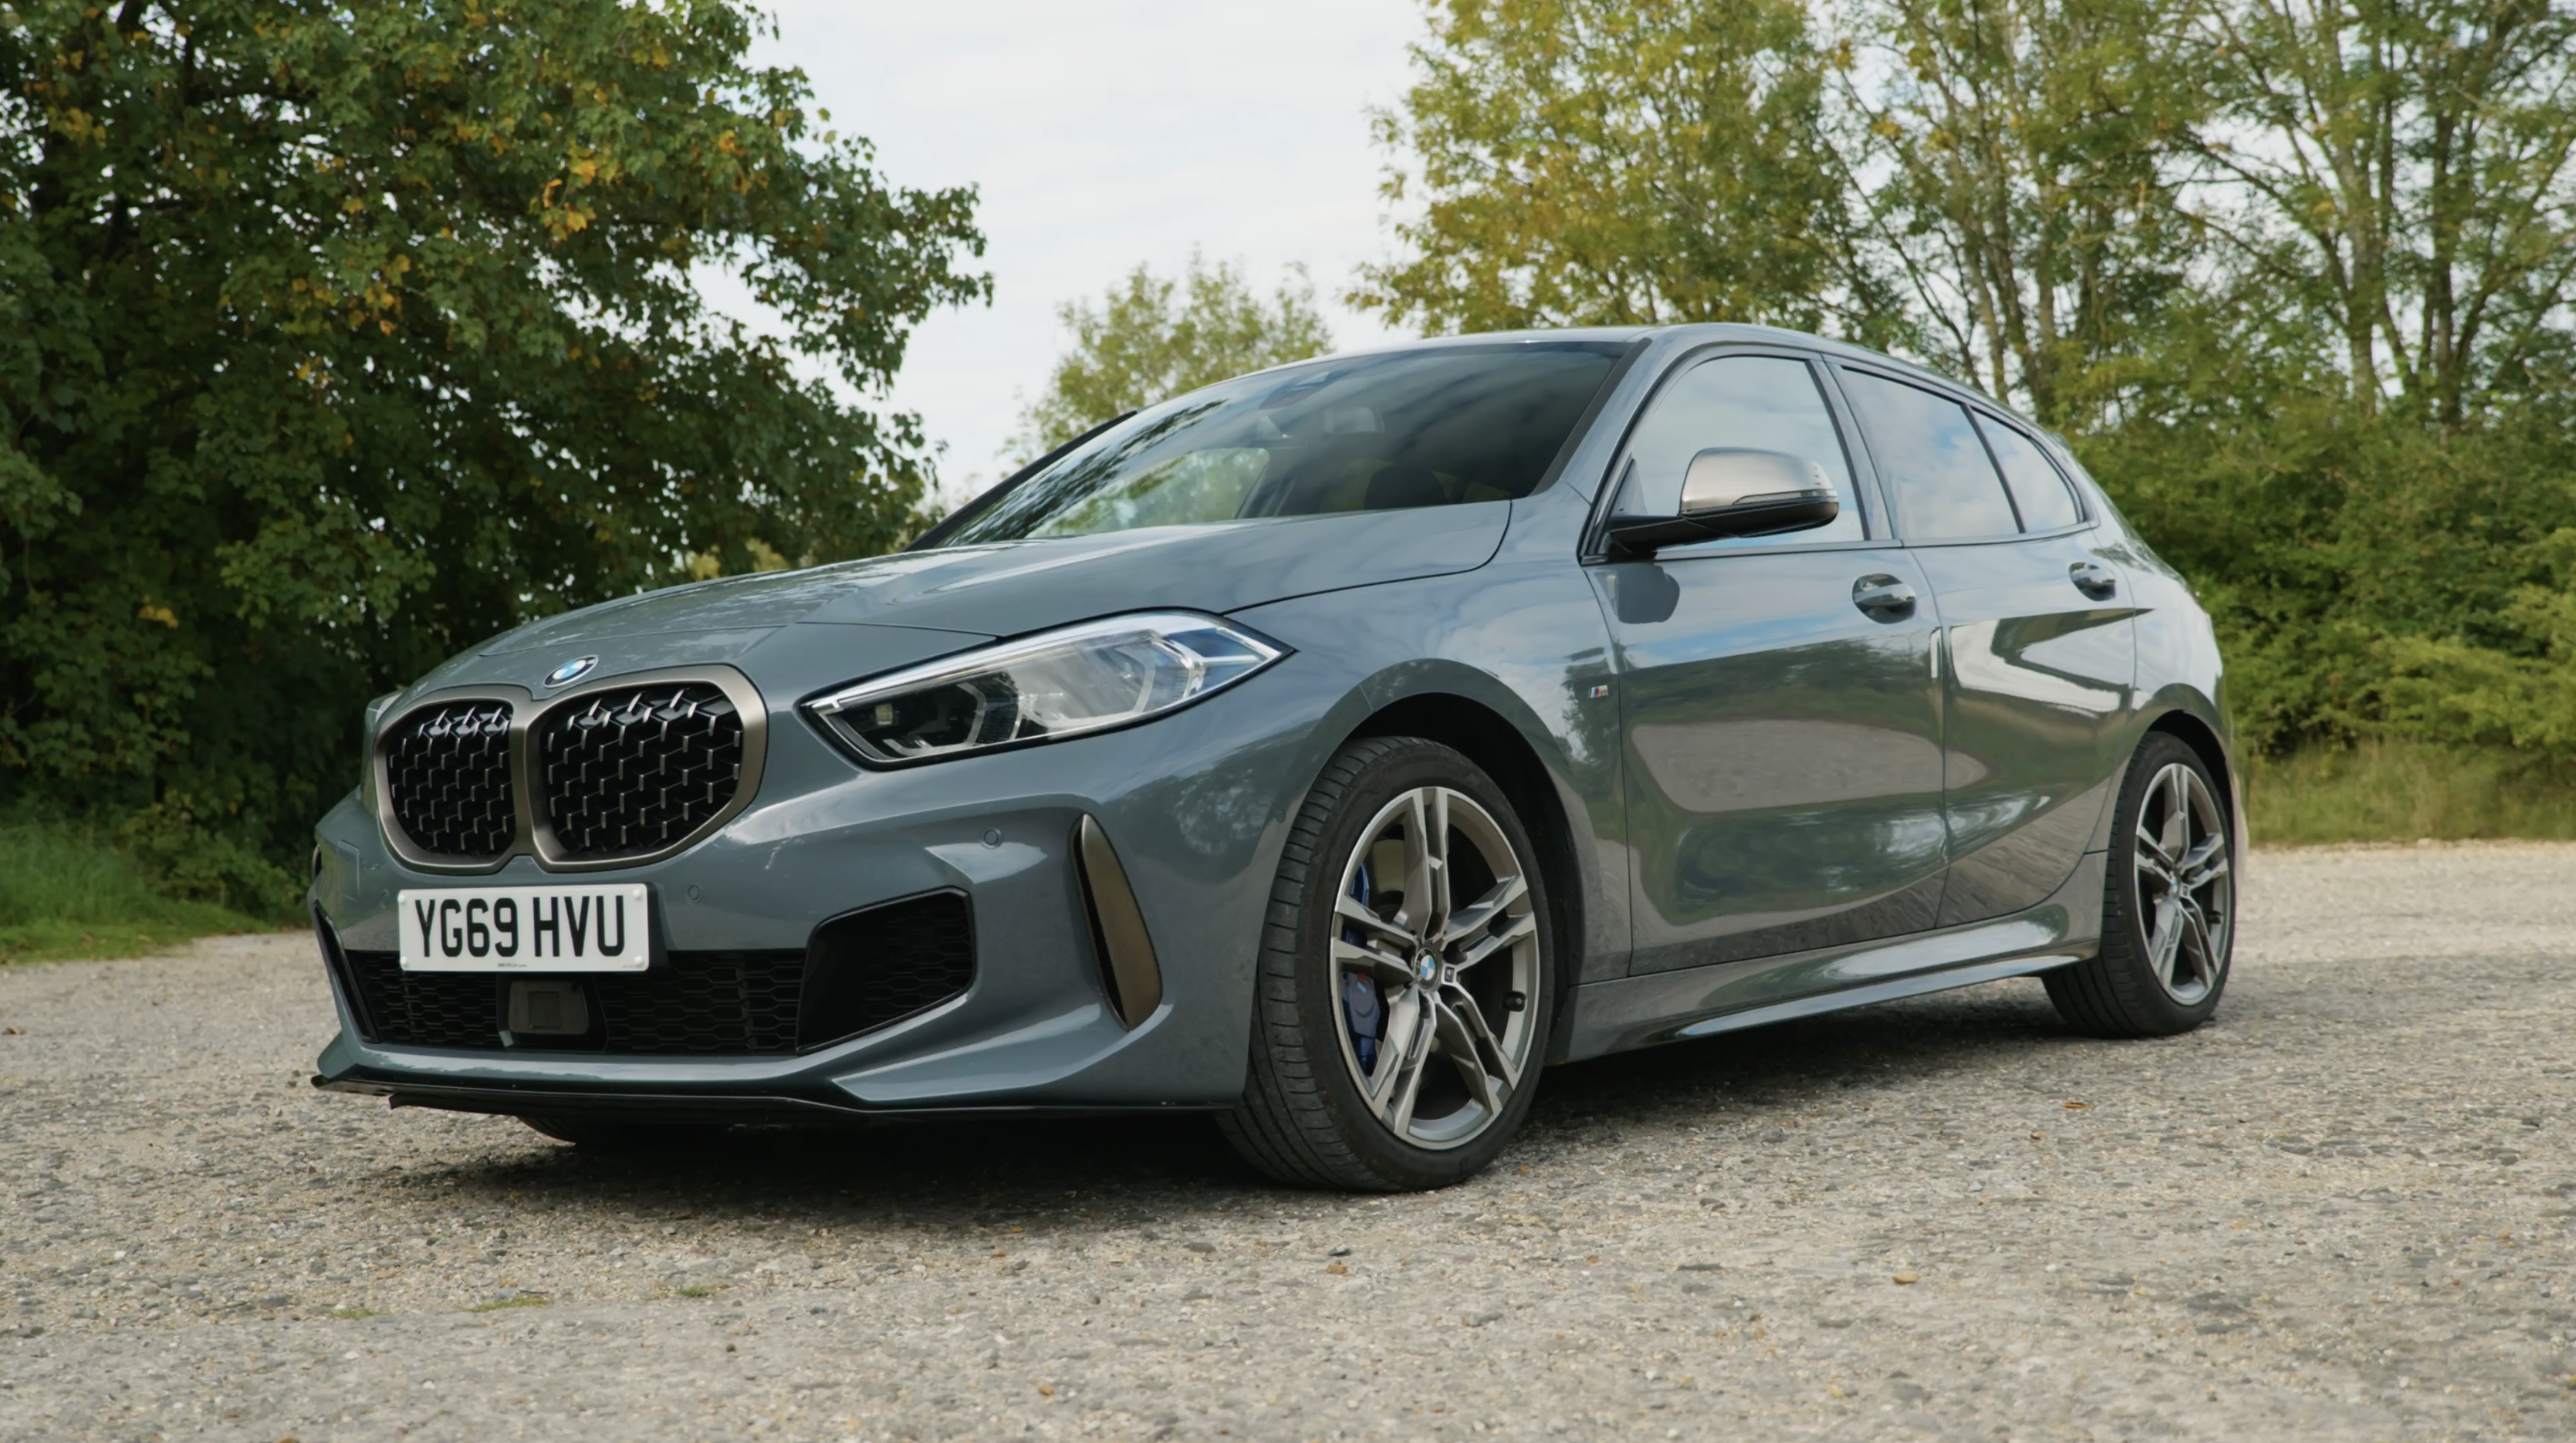 Video: 2020 BMW M135i: Not what we're used to from BMW, but that's no bad thing